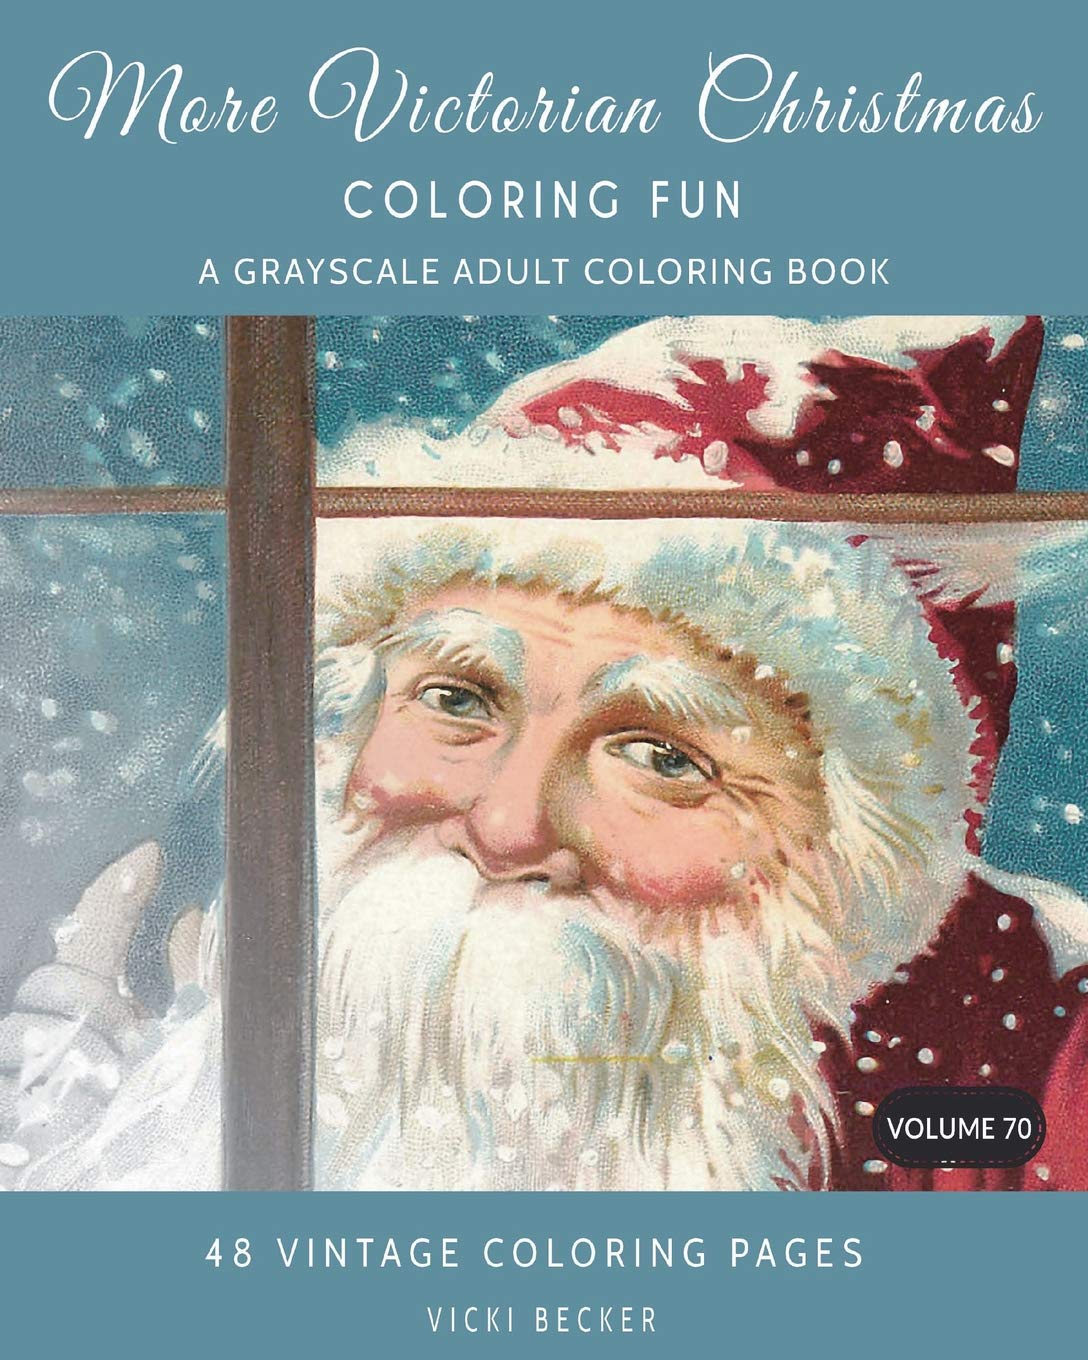 amazoncom more victorian christmas coloring fun a grayscale adult coloring book grayscale coloring books volume 70 9781981577668 vicki becker